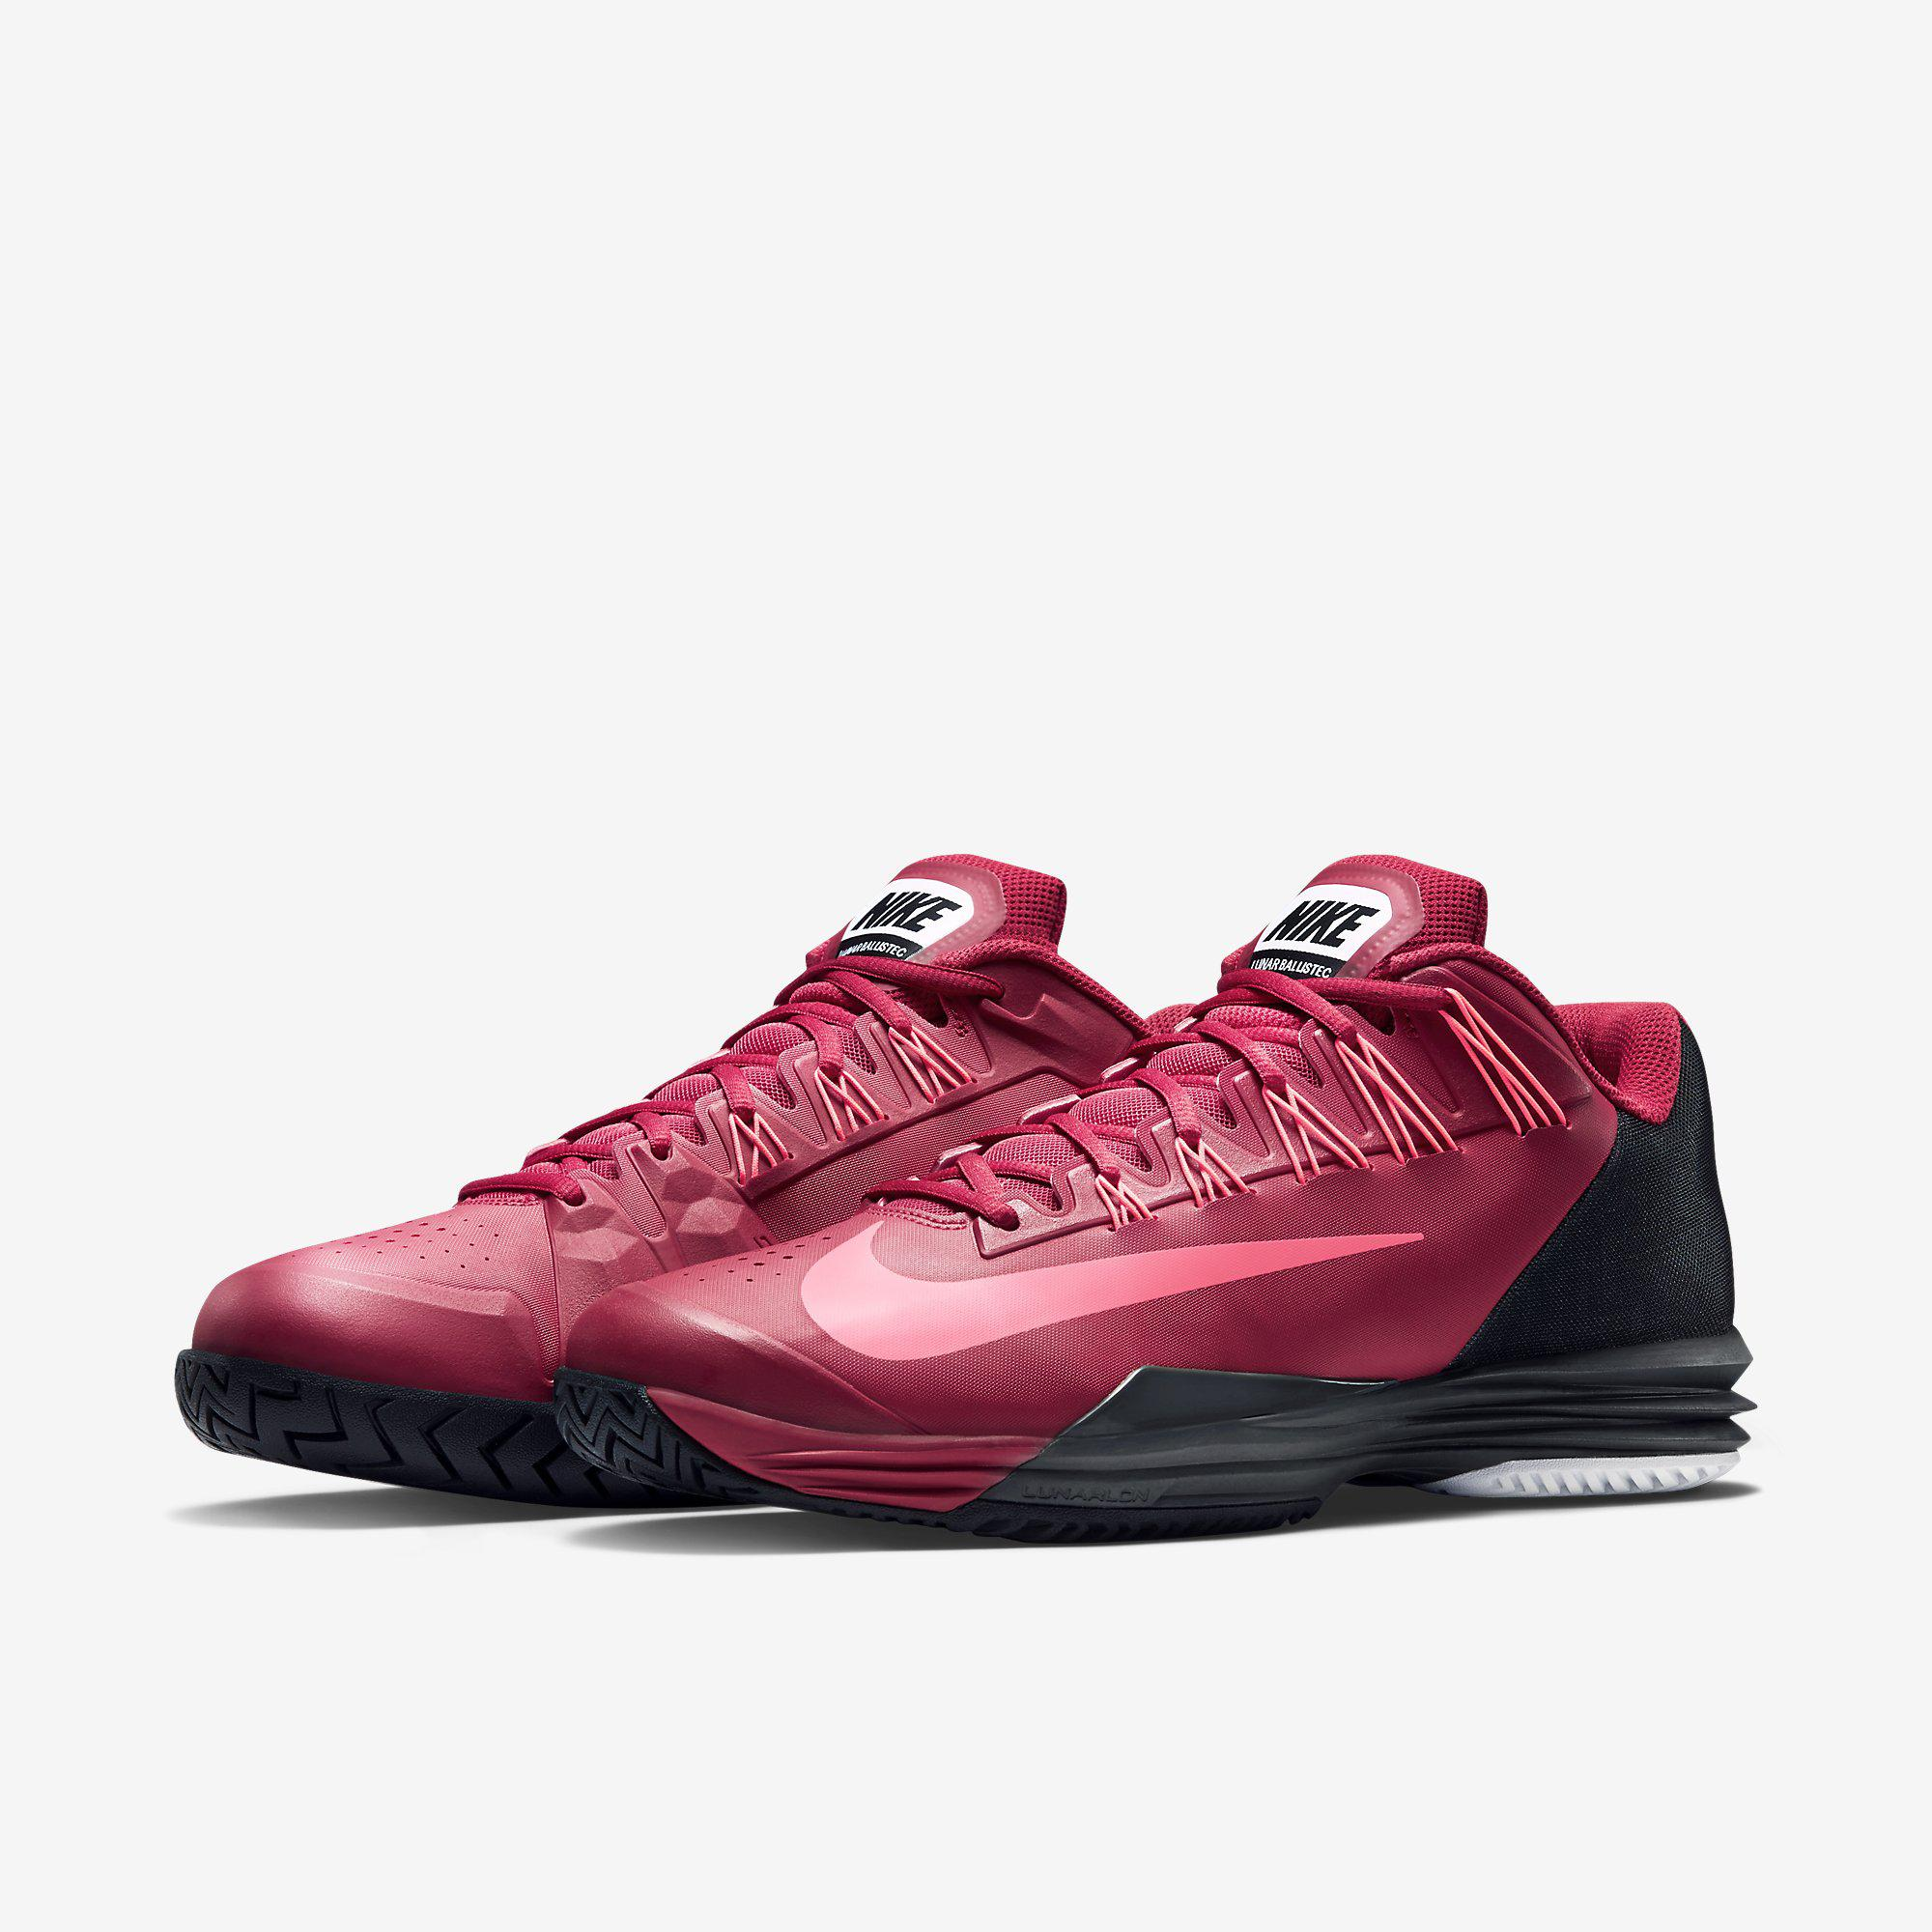 Nike Zoom JA Fly 2 Running Spikes SP15 Mens Pink